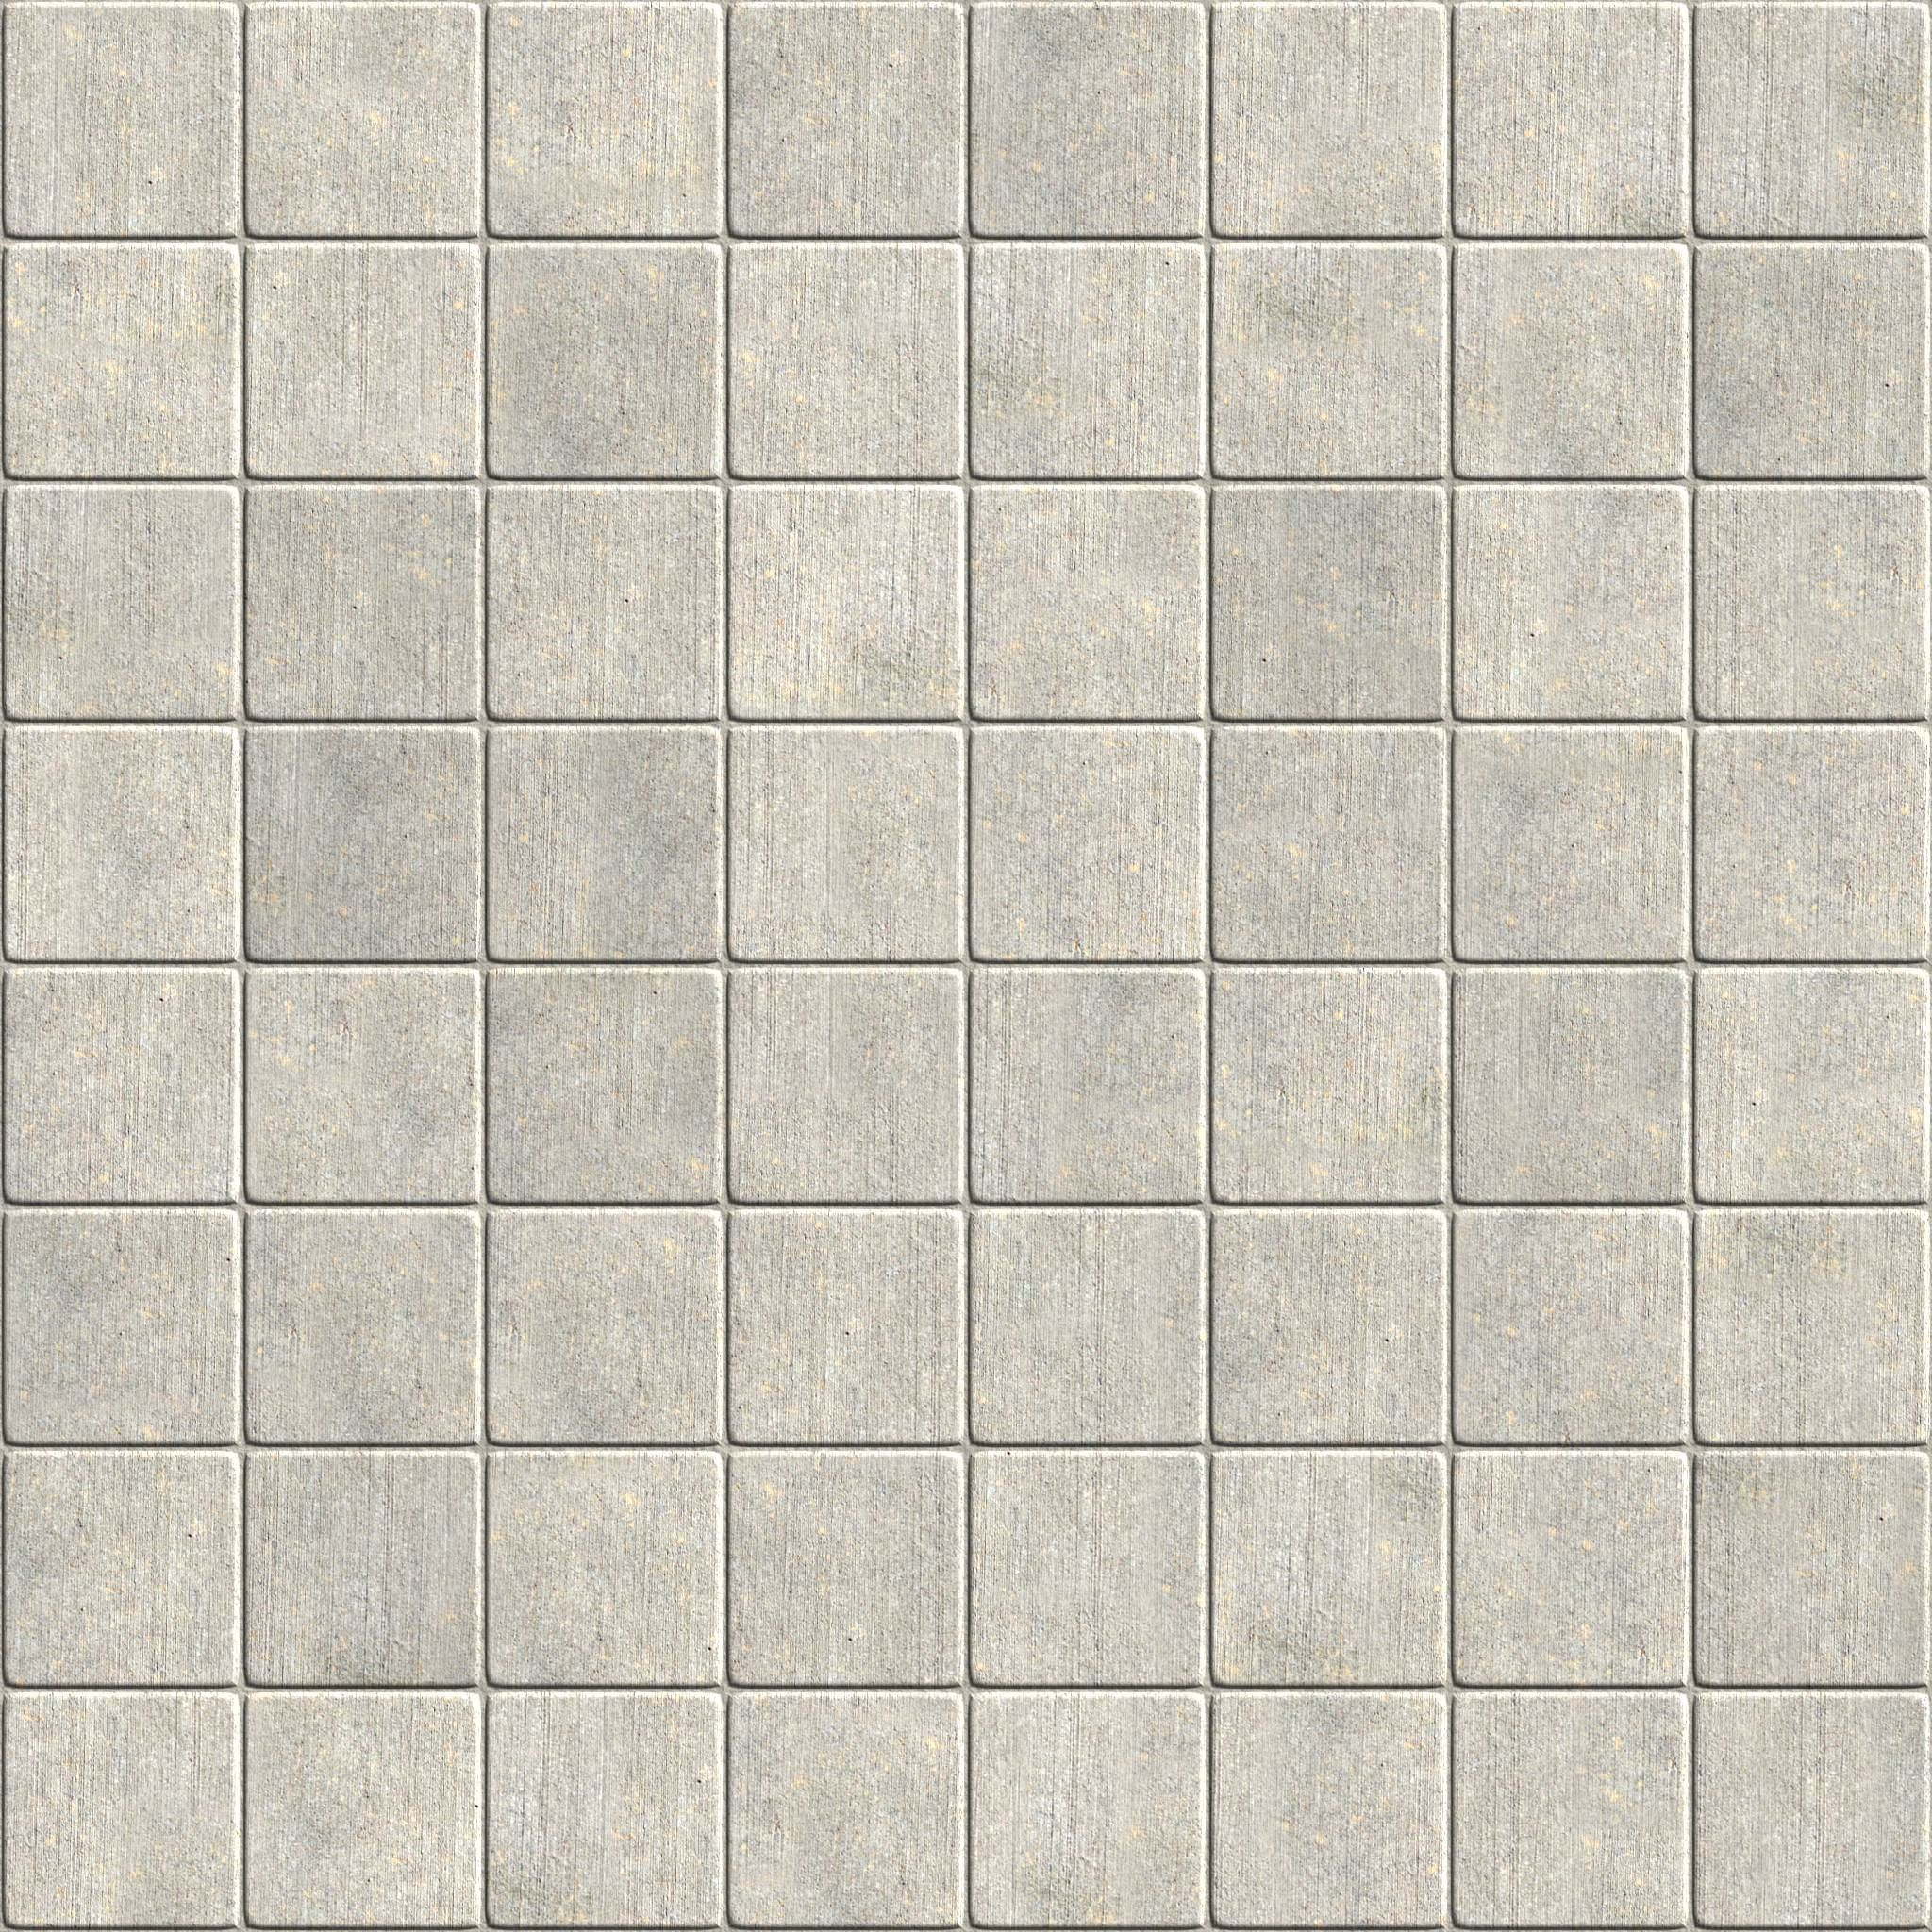 tile floor texture seamless ideas 619537 floor design